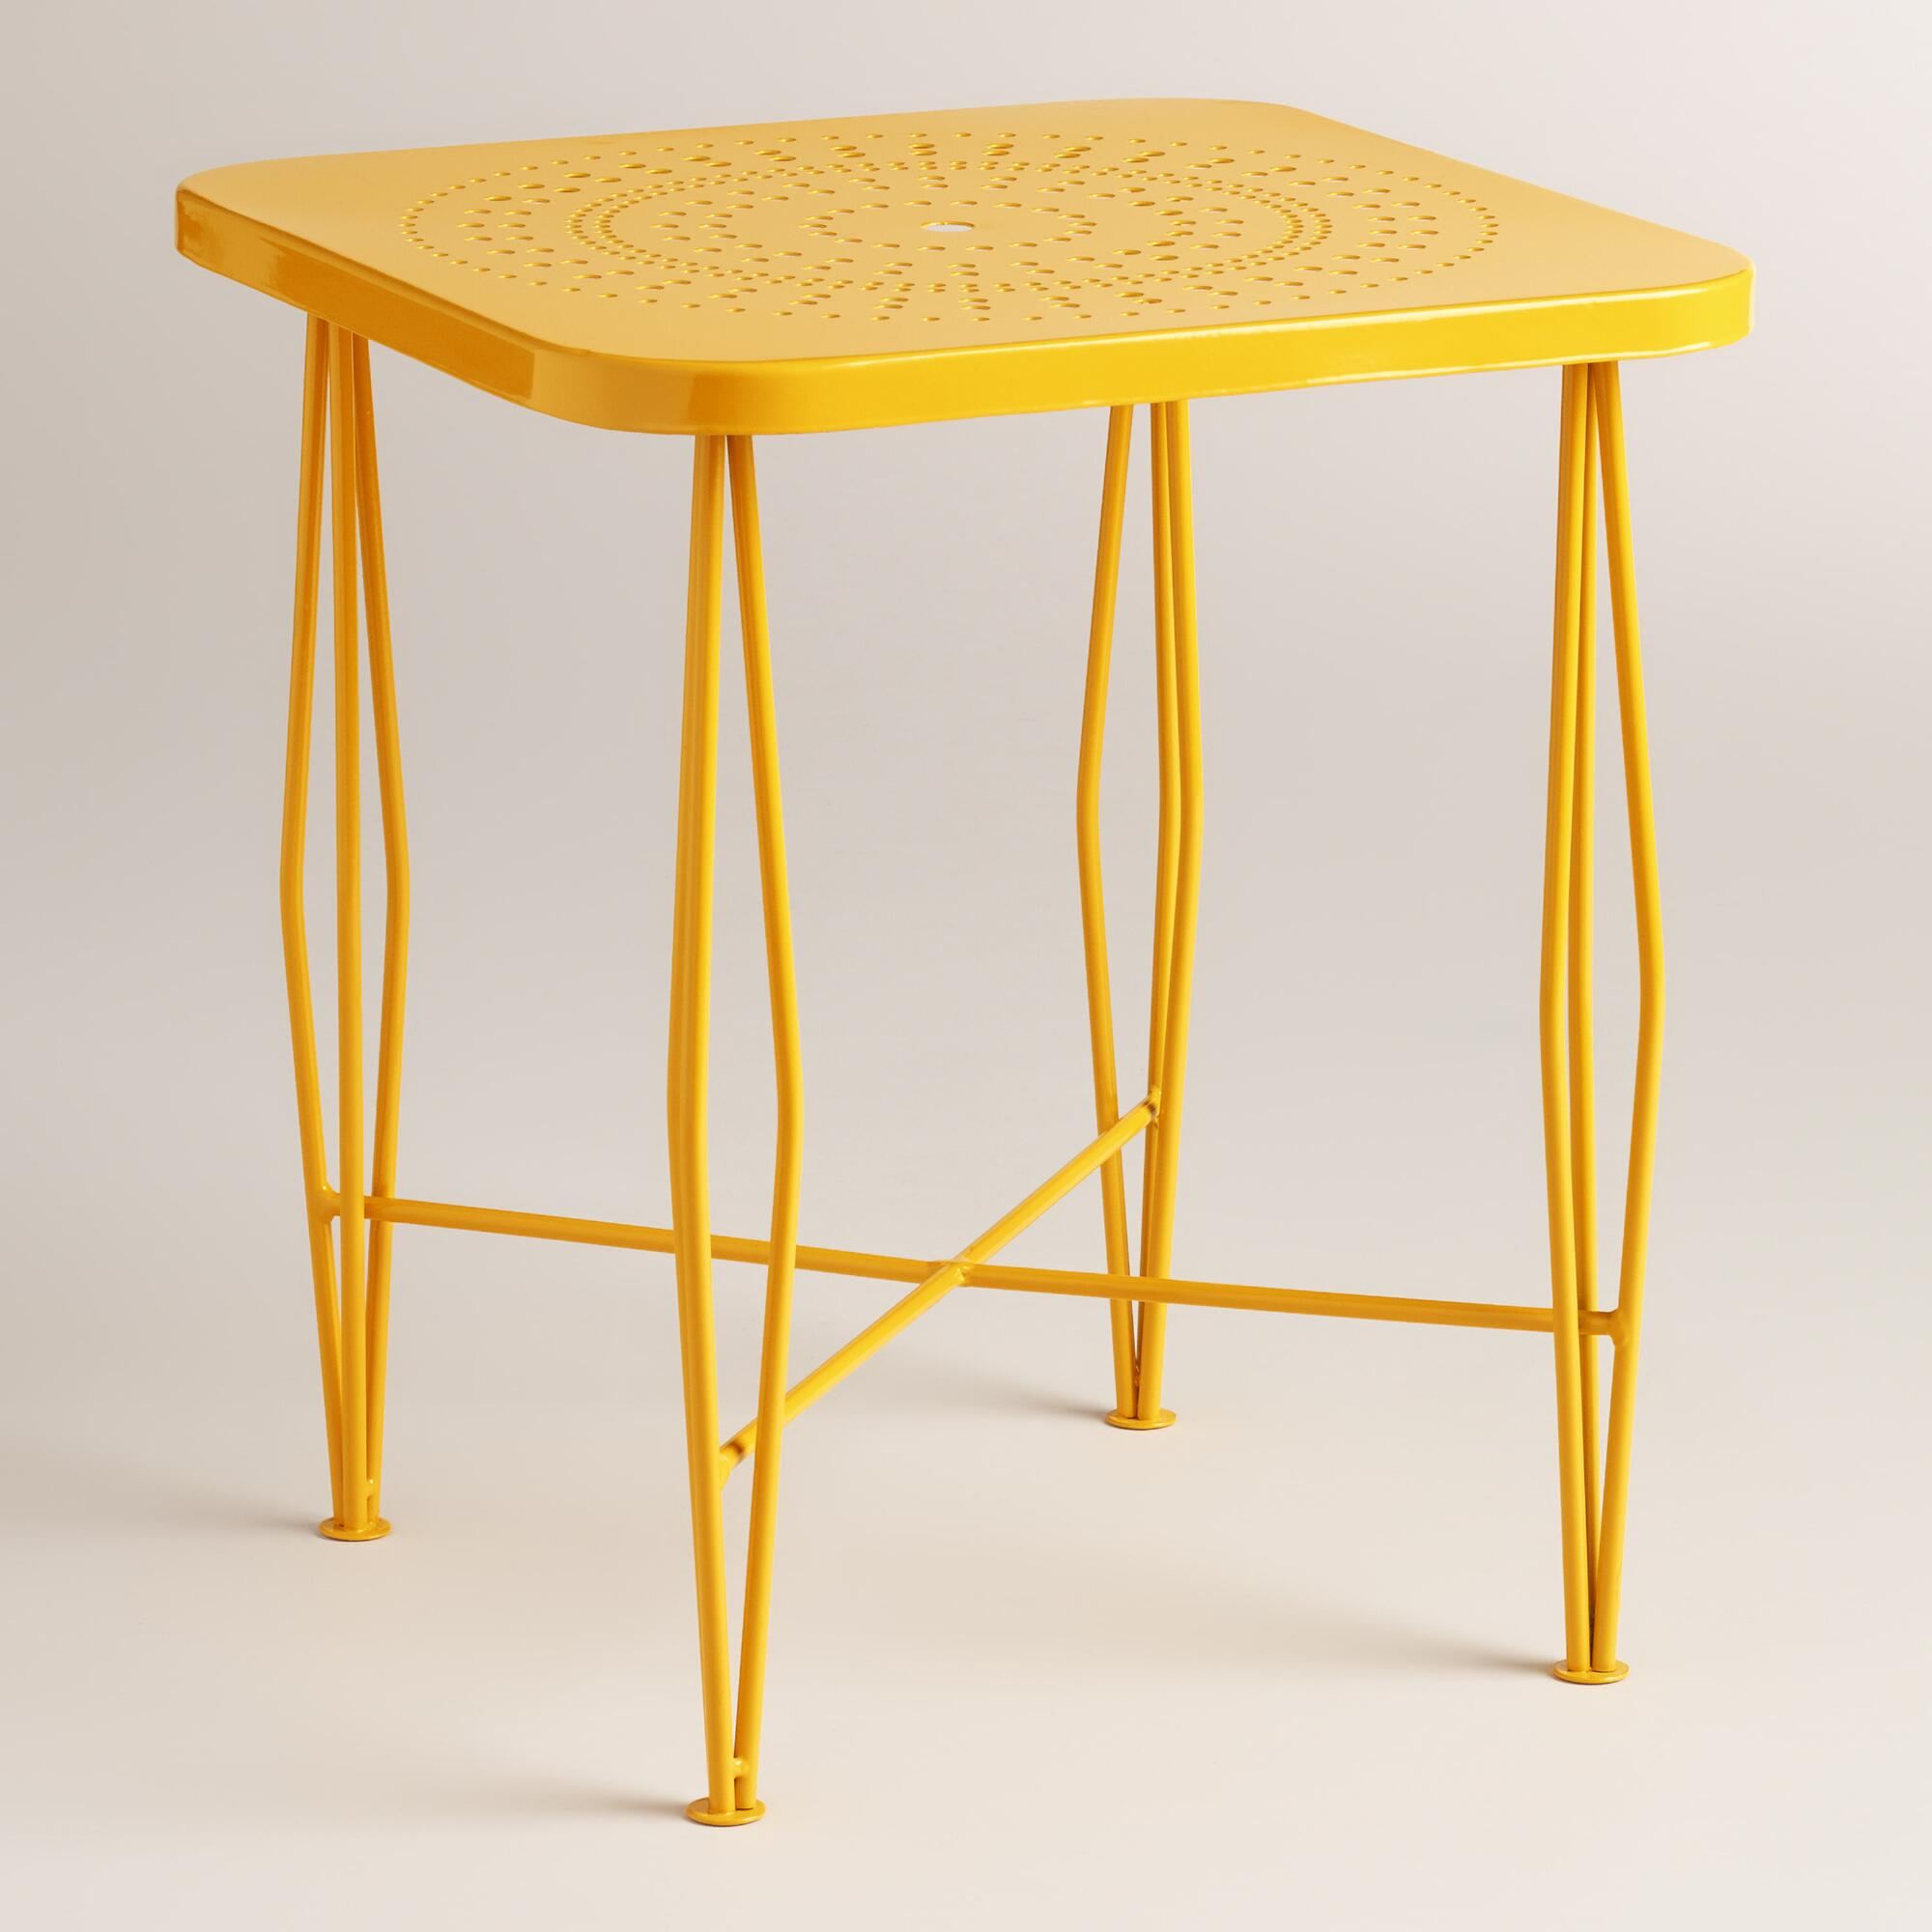 yellow metal alyssa outdoor hairpin side table world market iipsrv fcgi drum style end tables gun storage furniture bar height and chairs country cottage decor steel pipe design